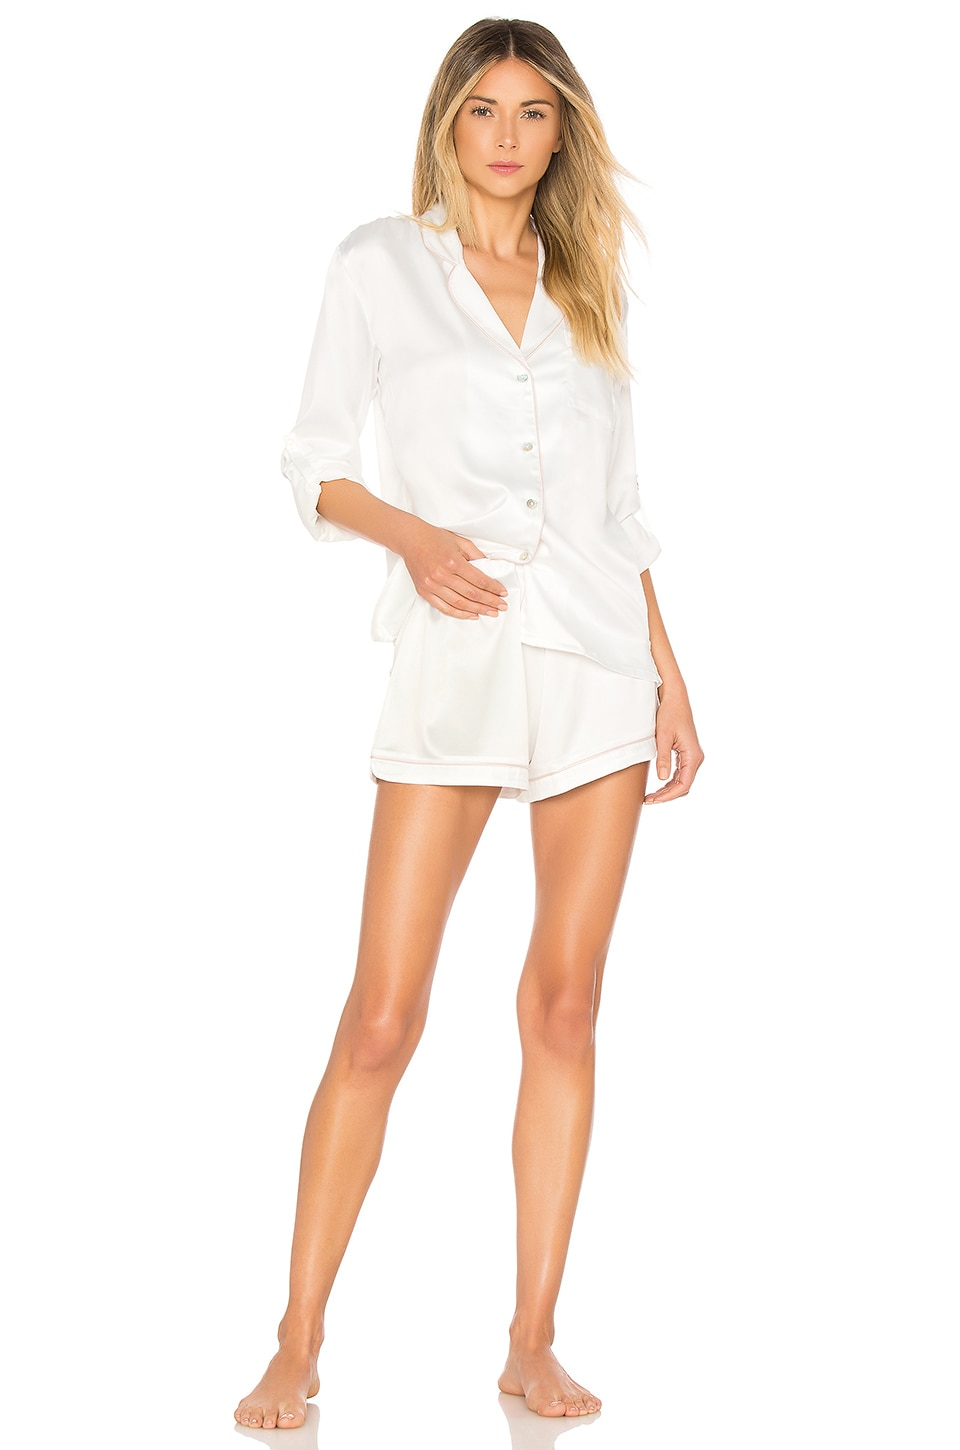 homebodii Long Sleeve Piping PJ Set in Ivory